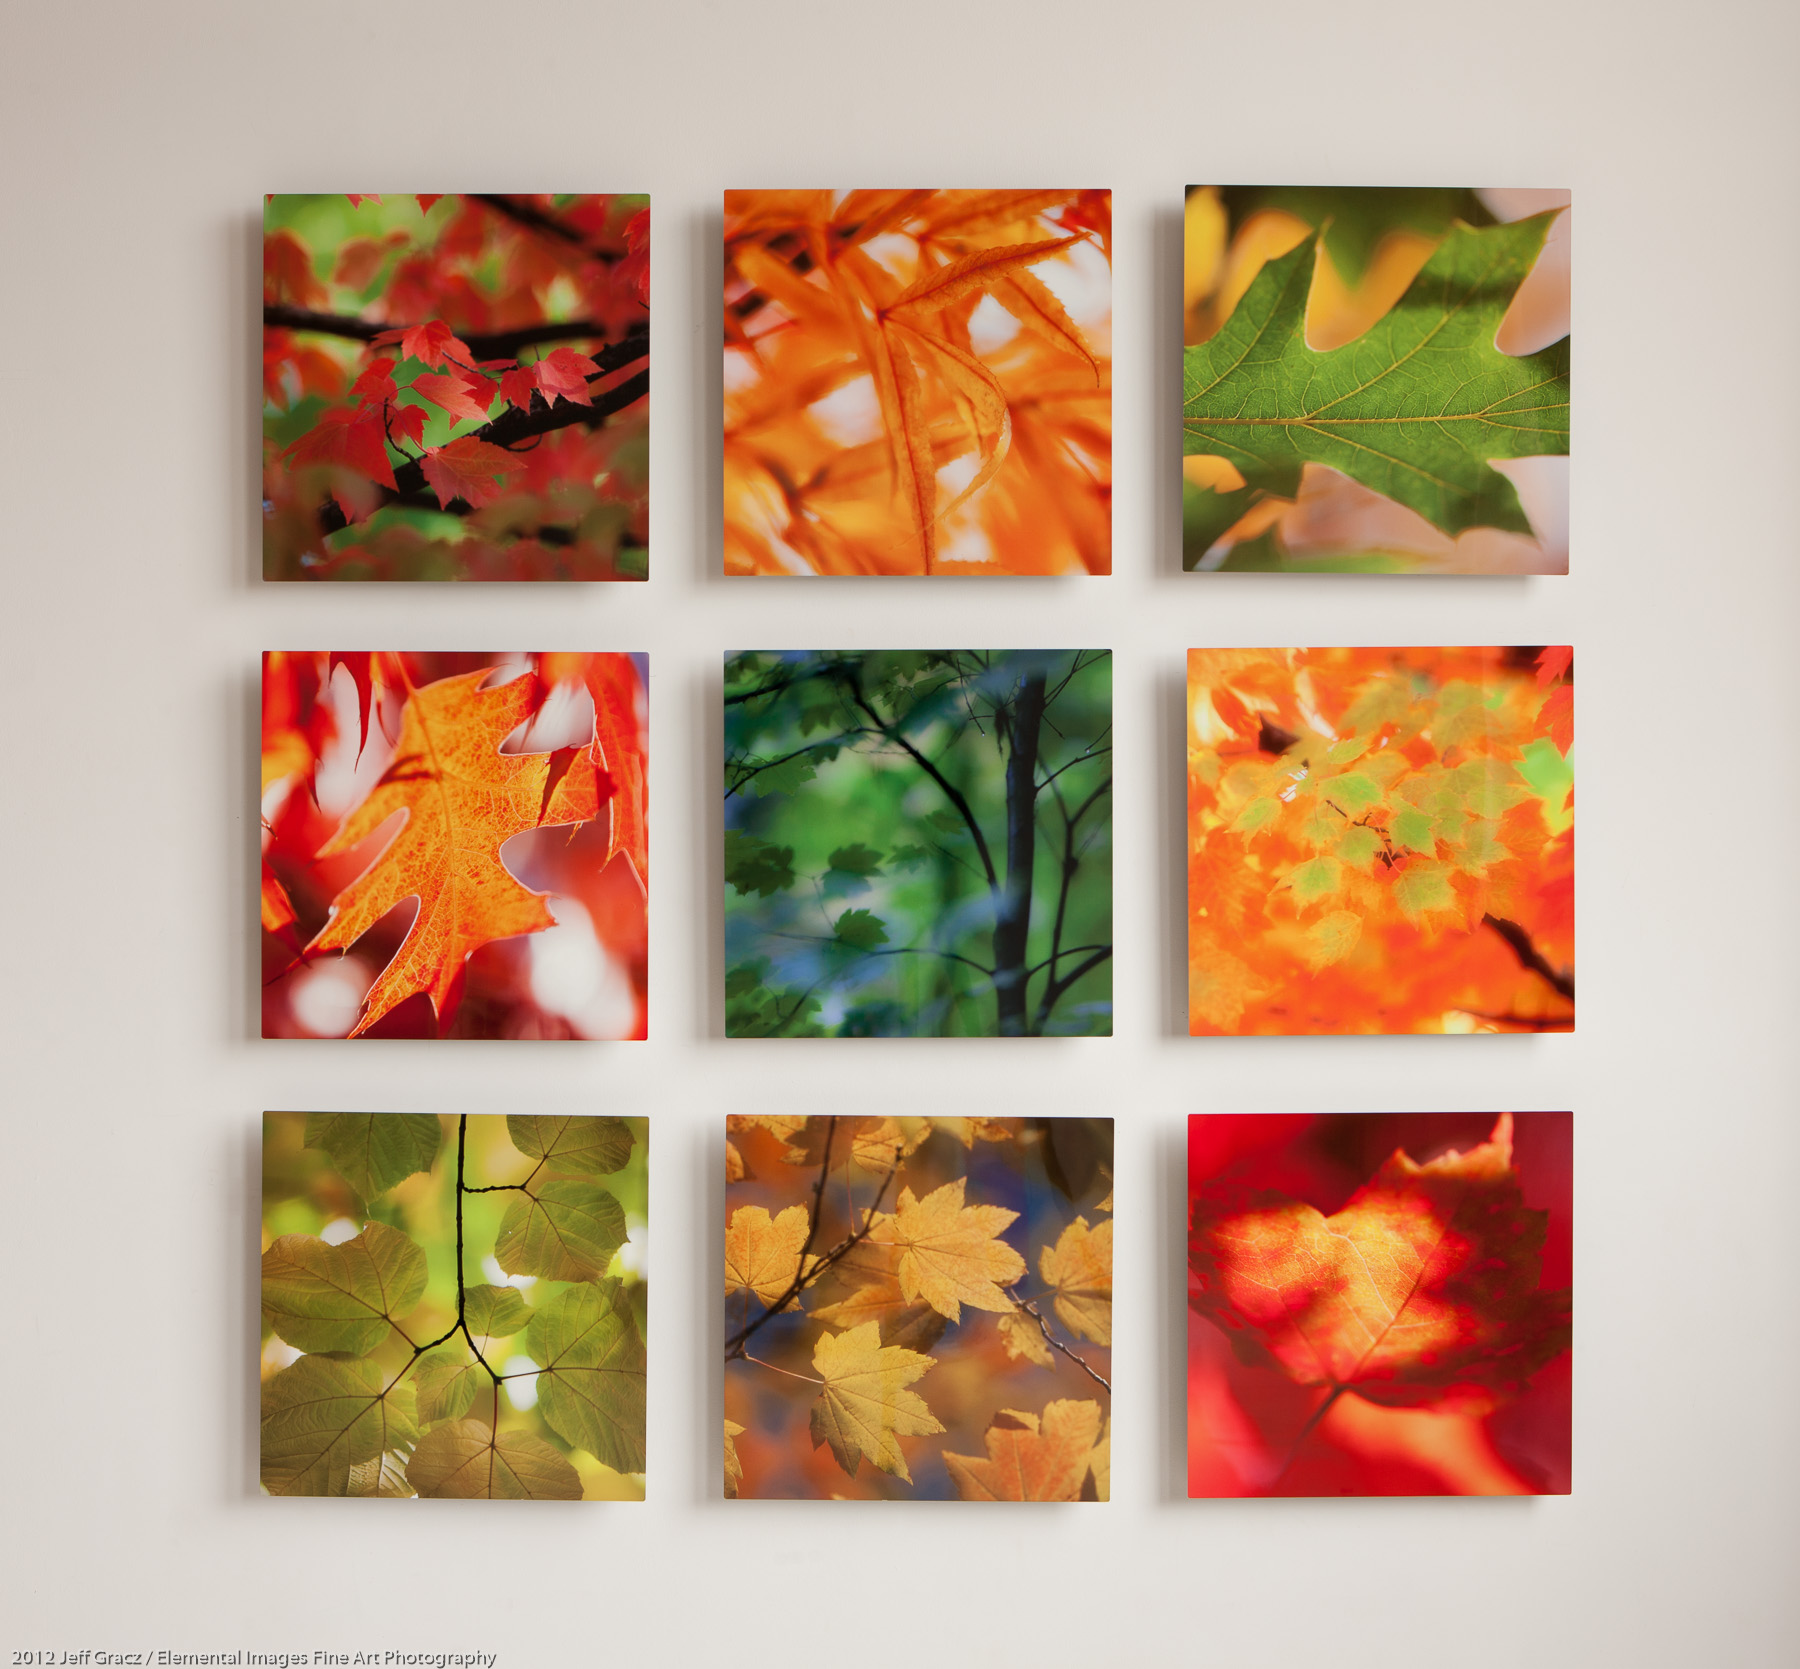 16x16 grouping example | Portland | OR | USA - © 2012 Jeff Gracz / Elemental Images Fine Art Photography - All Rights Reserved Worldwide